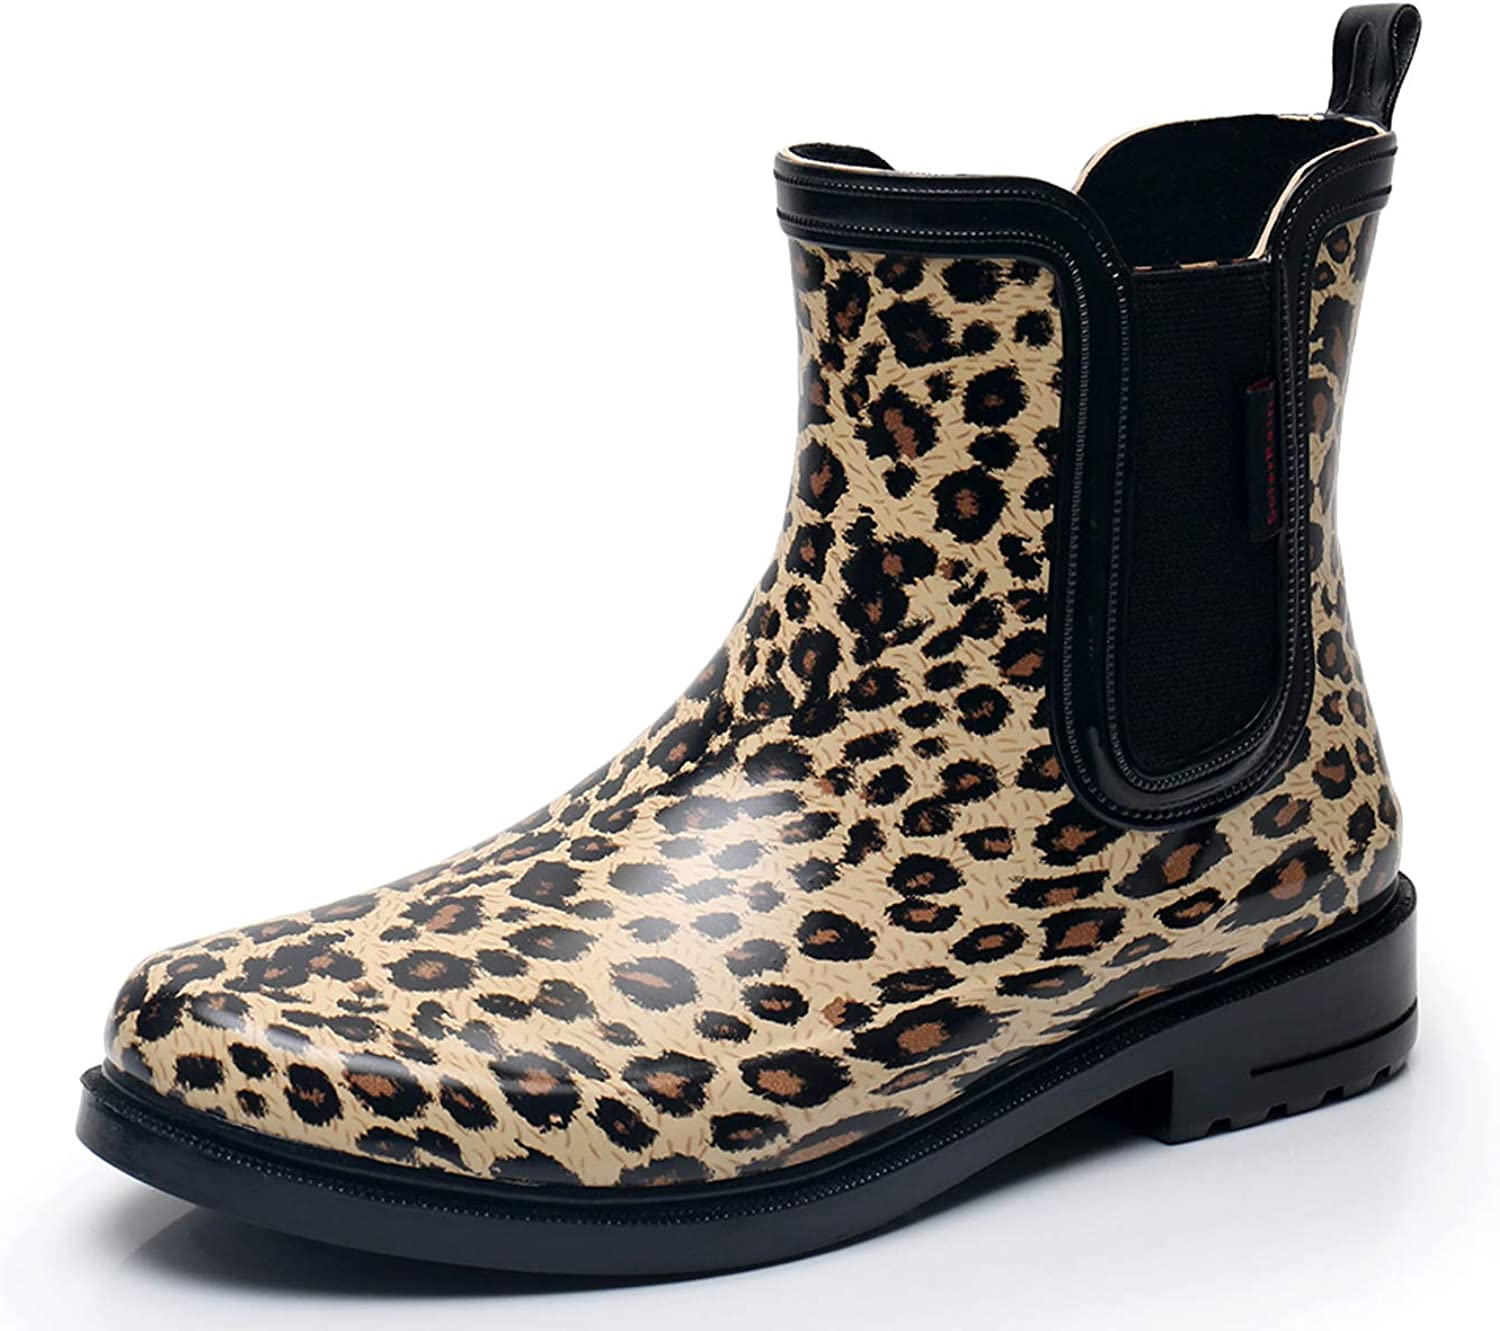 SOLARRAIN Women's Elastic Short Ankle Rubber Rain Boots Non Slip Waterproof Insulated Leopard Print Rain shoes